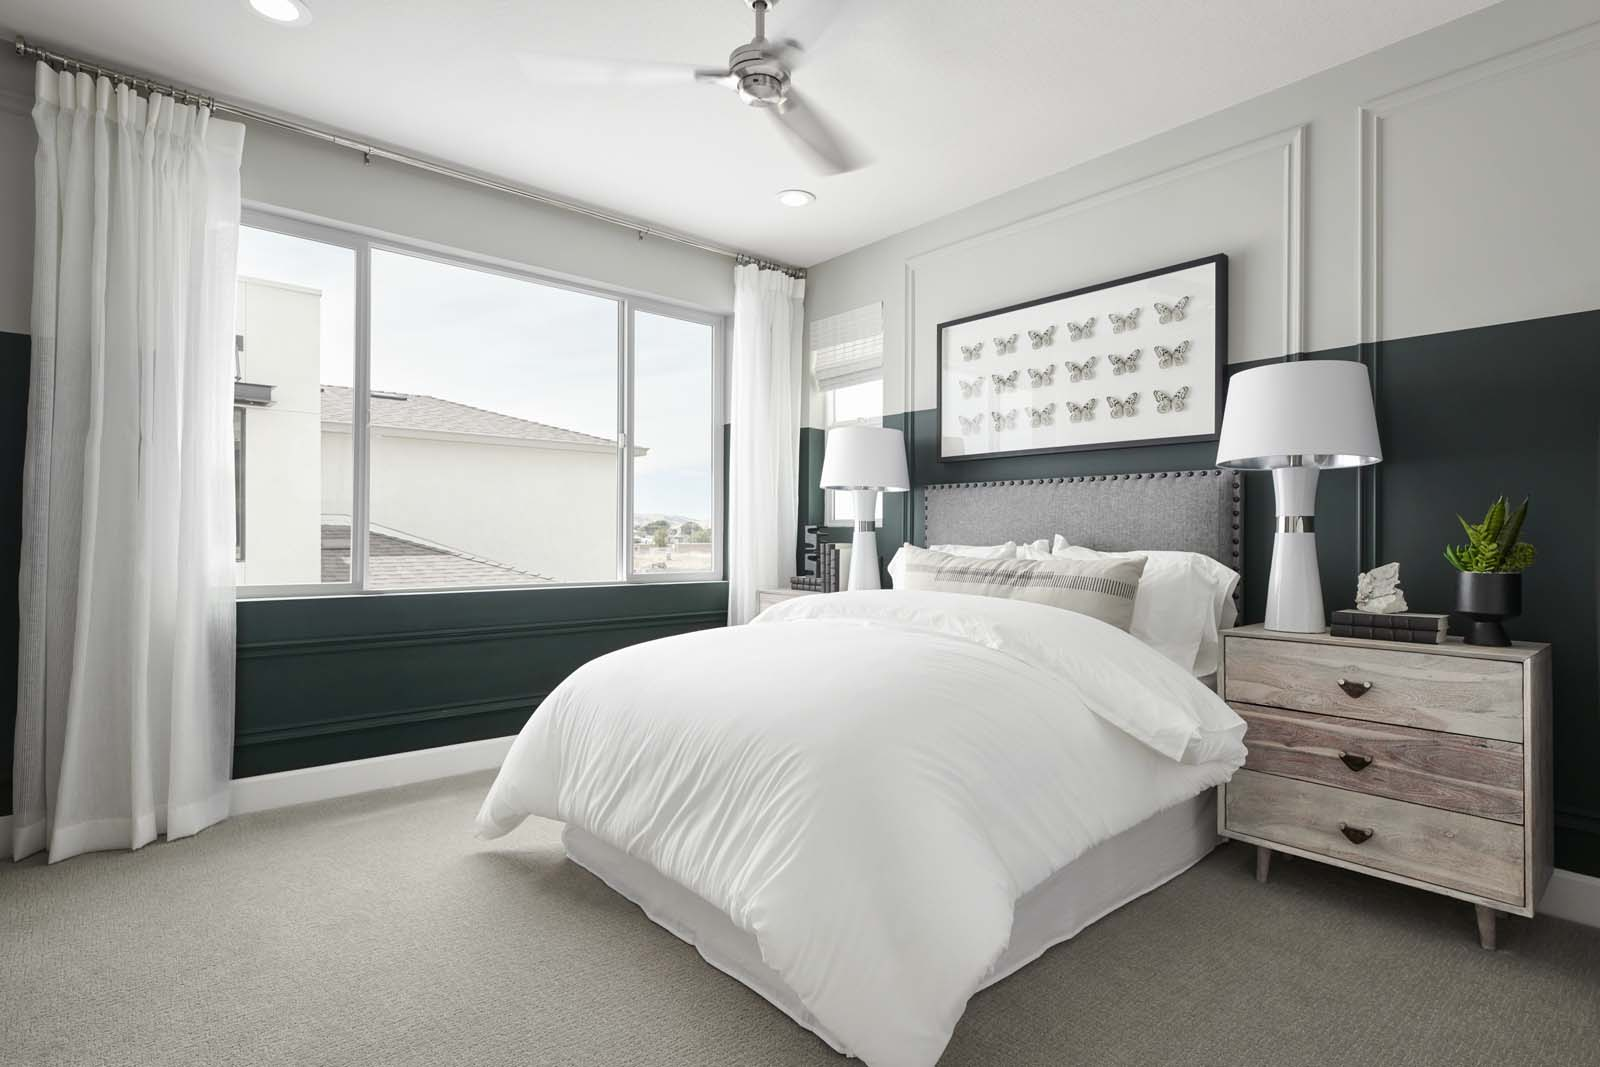 Residence 2 Bedroom 4 | Mulholland at Boulevard in Dublin, CA | Brookfield Residential